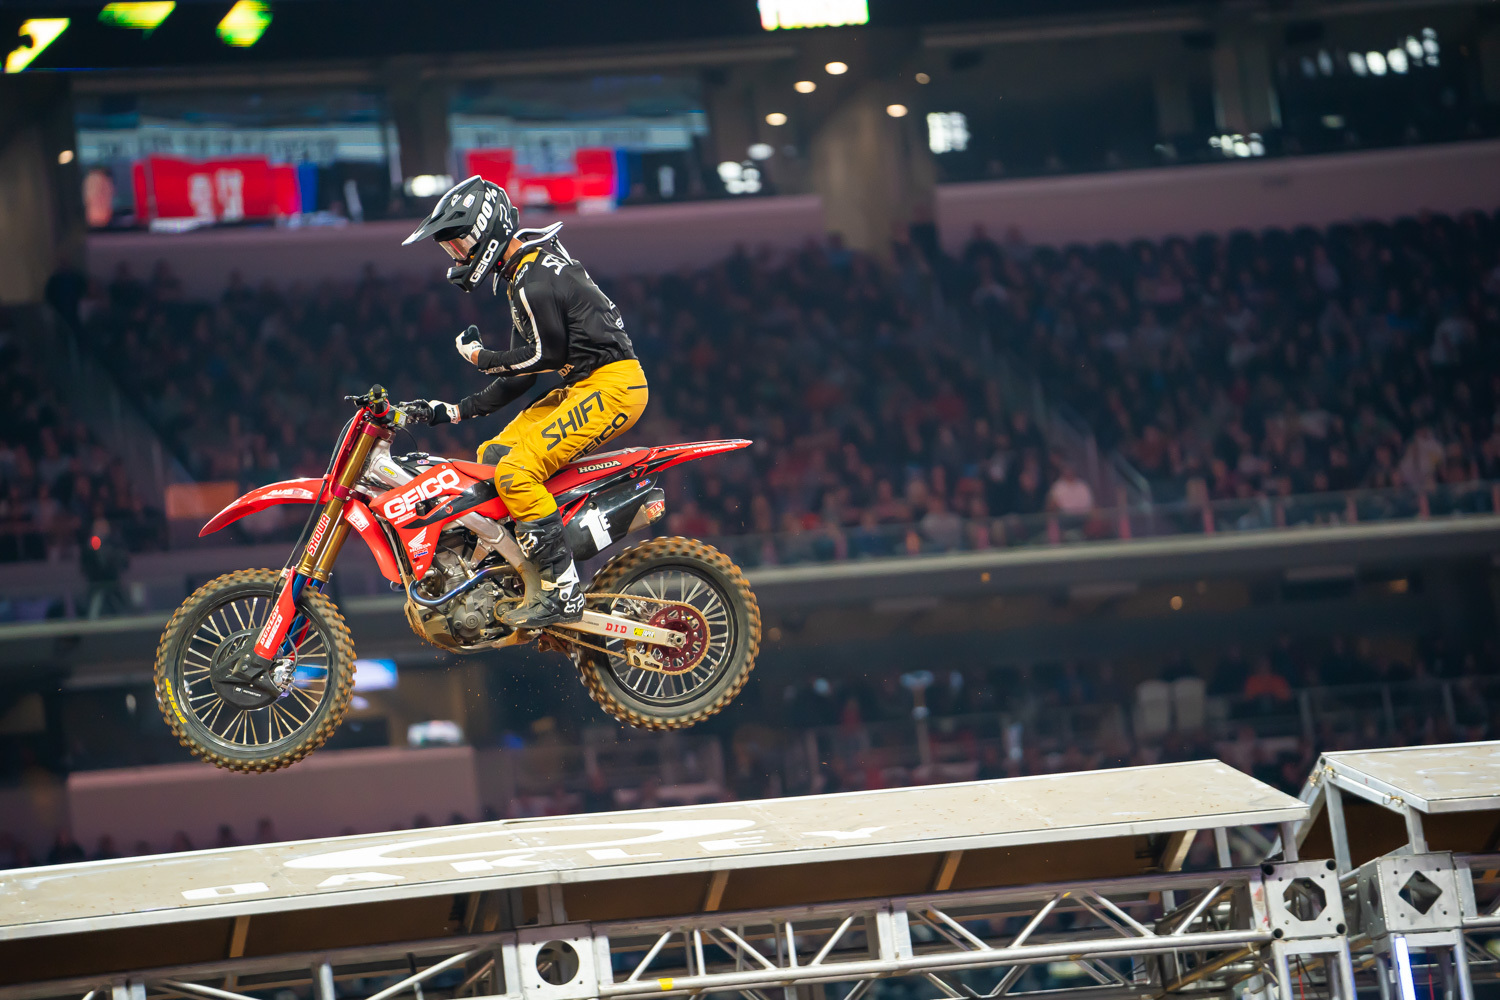 2020-ARLINGTON-SUPERCROSS_KICKSTART_0089